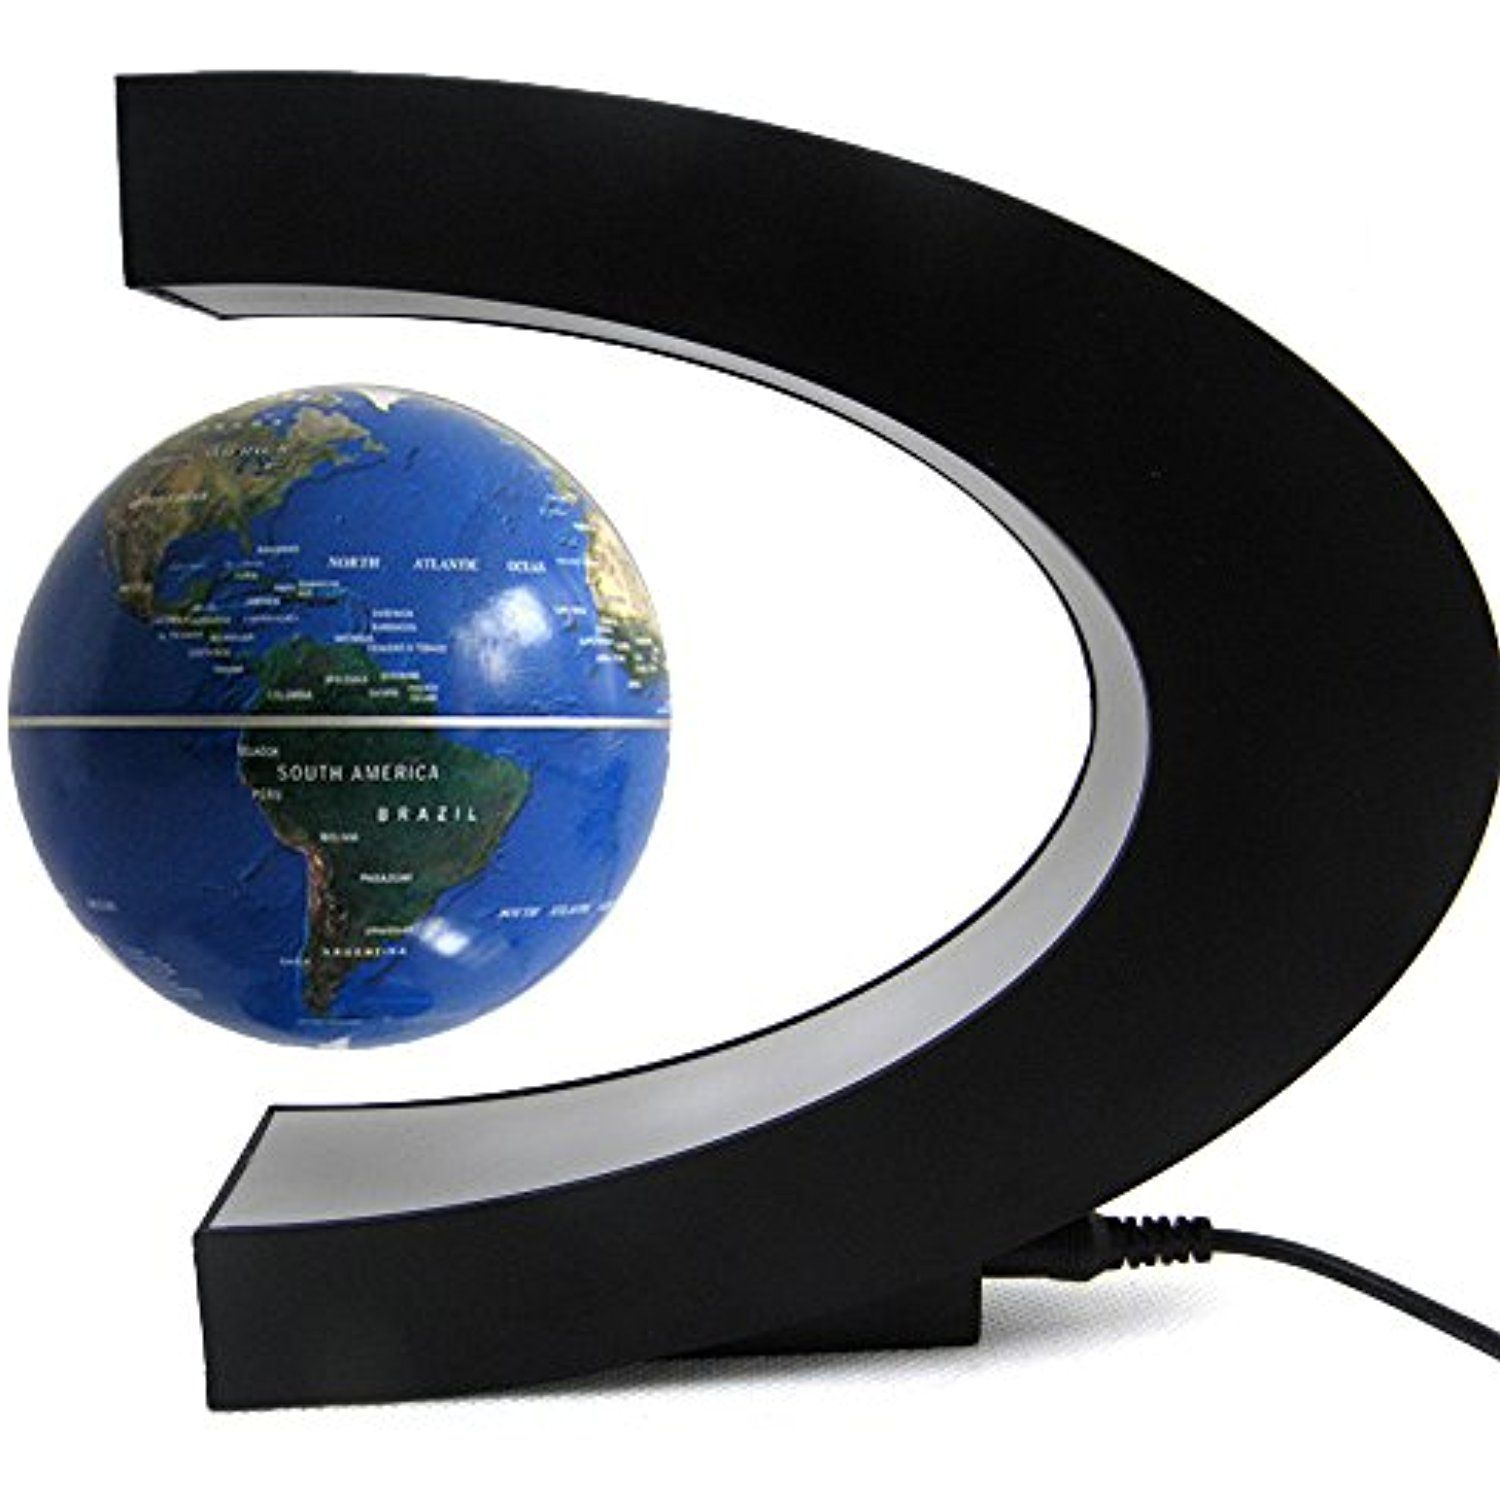 Aenmil learning and playing c shape led world map decoration aenmil learning and playing c shape led world map decoration magnetic levitation floating globe light gumiabroncs Gallery